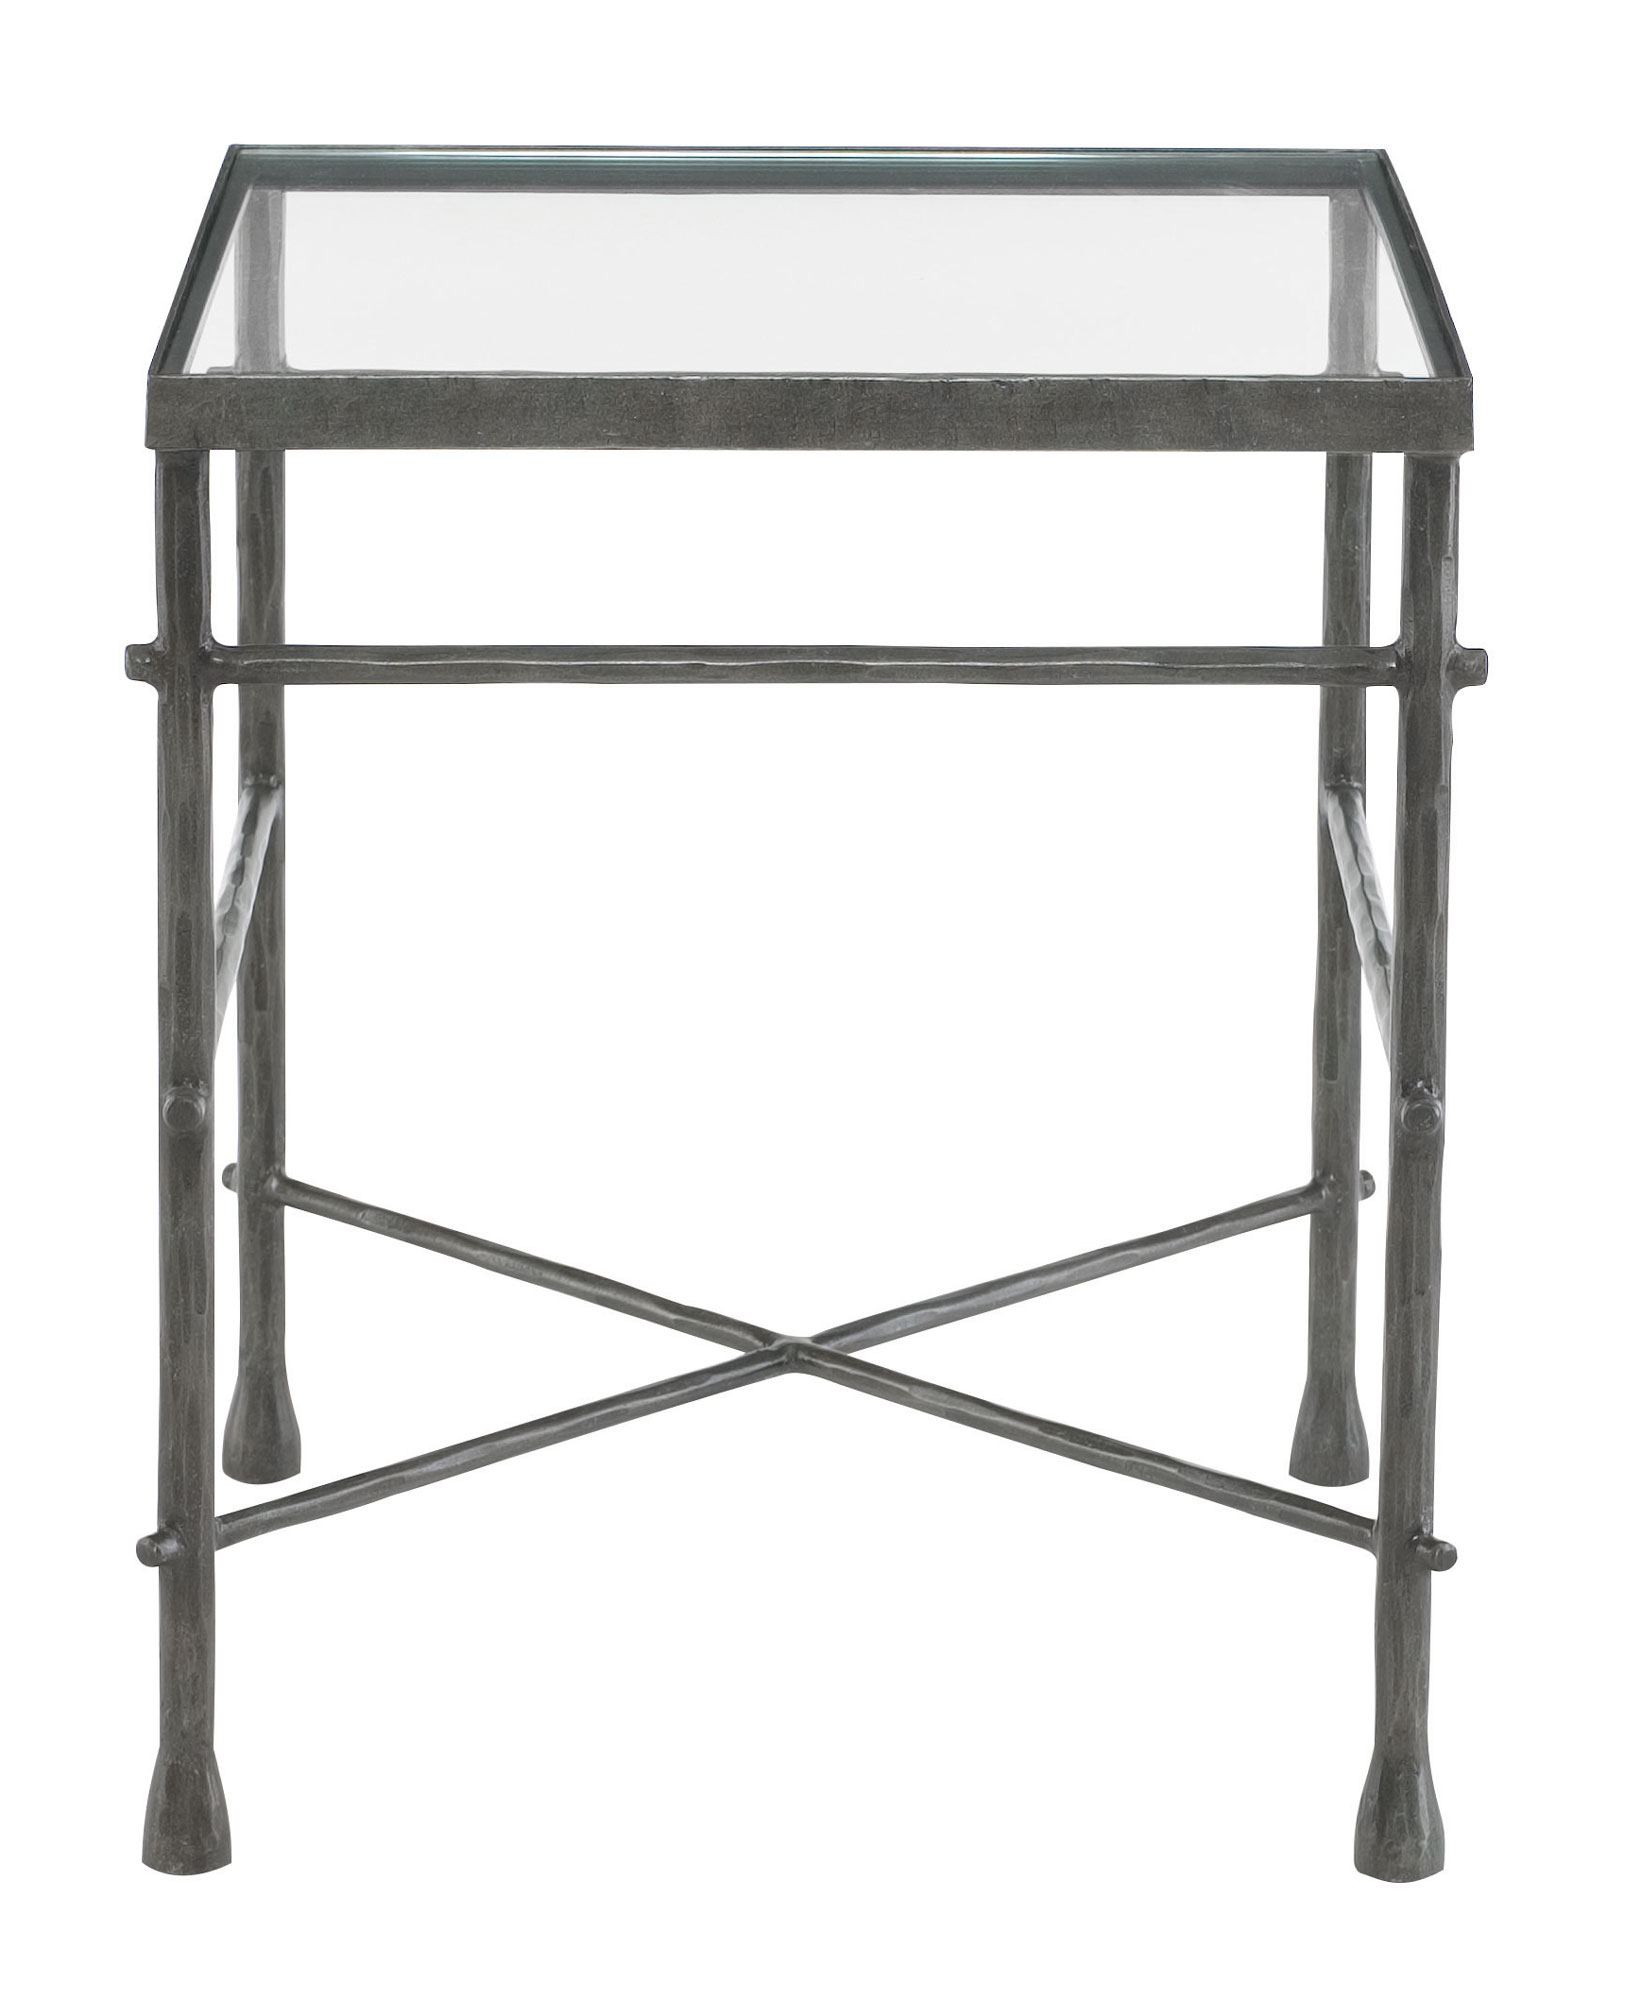 glass top end tables End Table Glass Top and Metal Base | Bernhardt glass top end tables